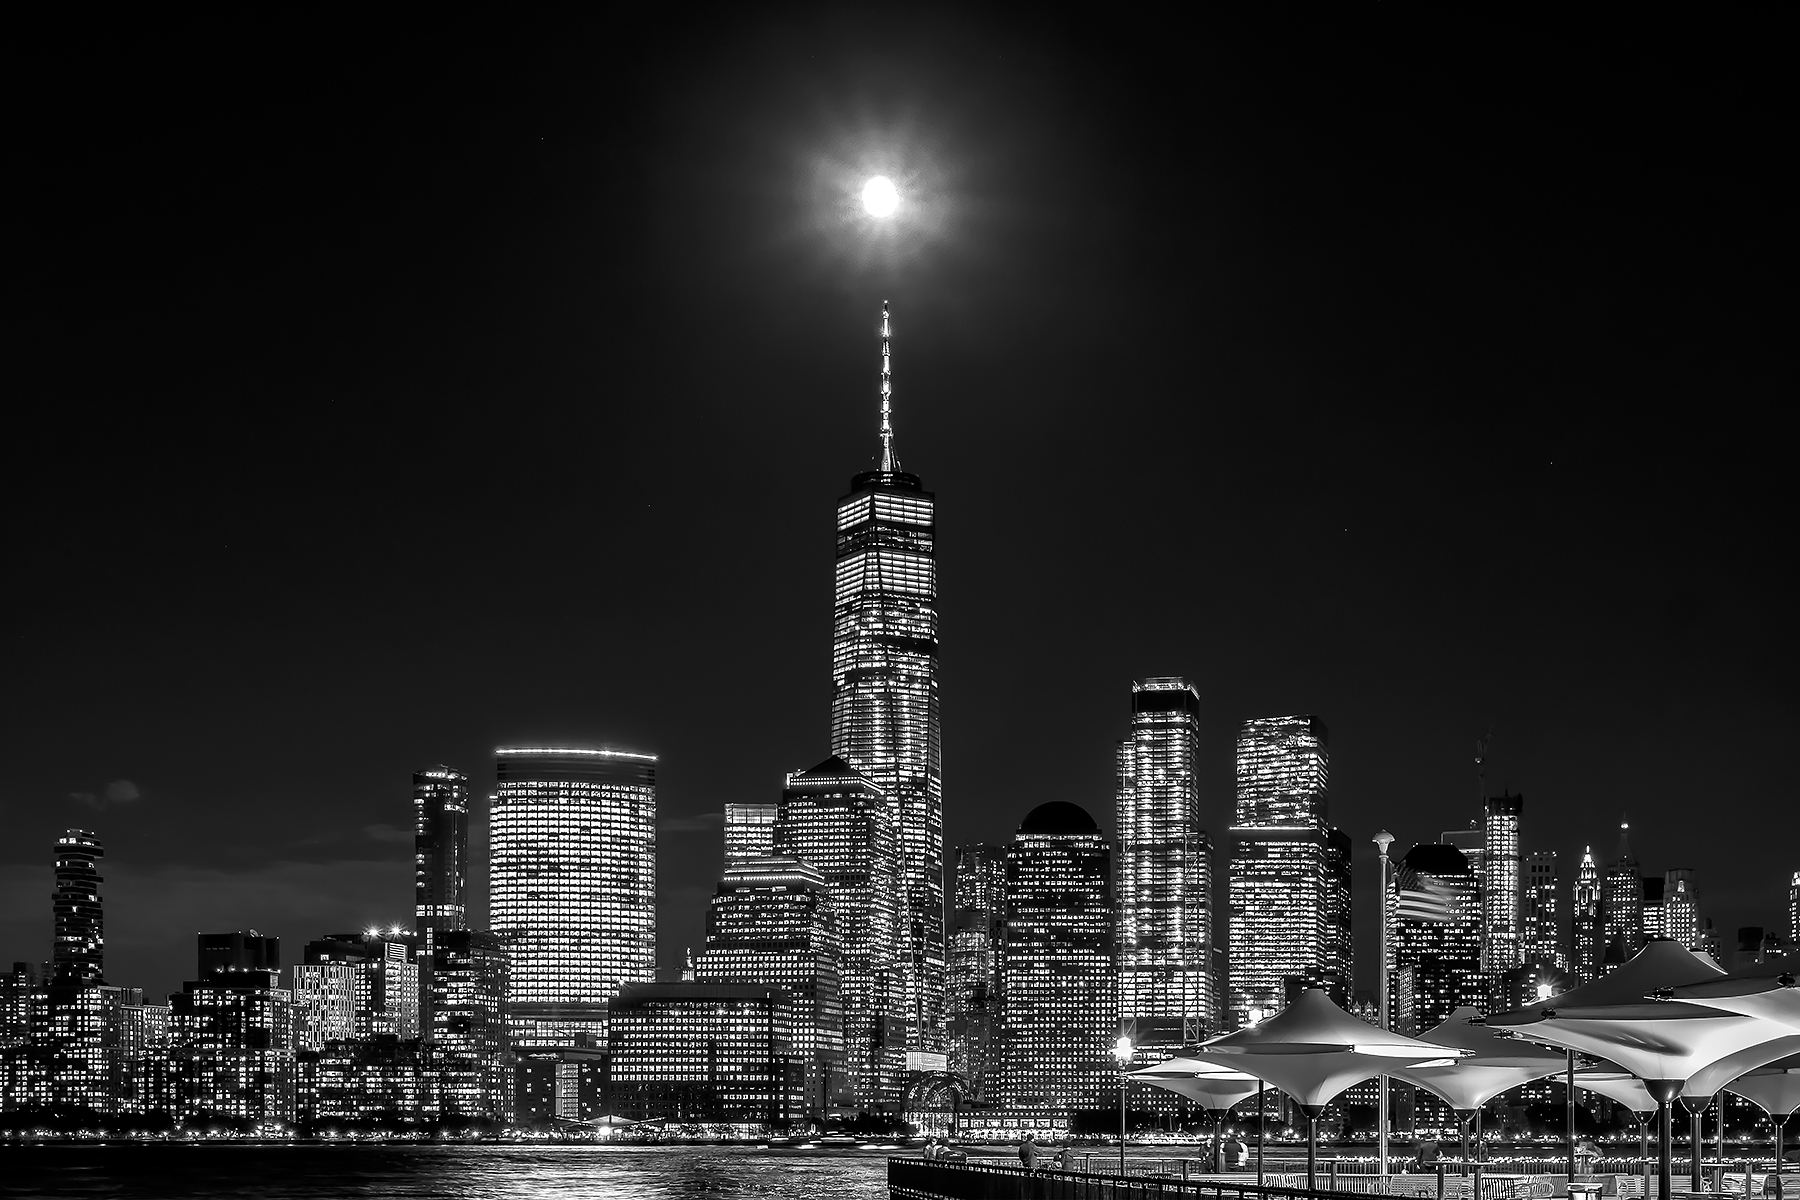 Carlos_Esguerra_Full Moon Over Freedom Tower-1317.jpg